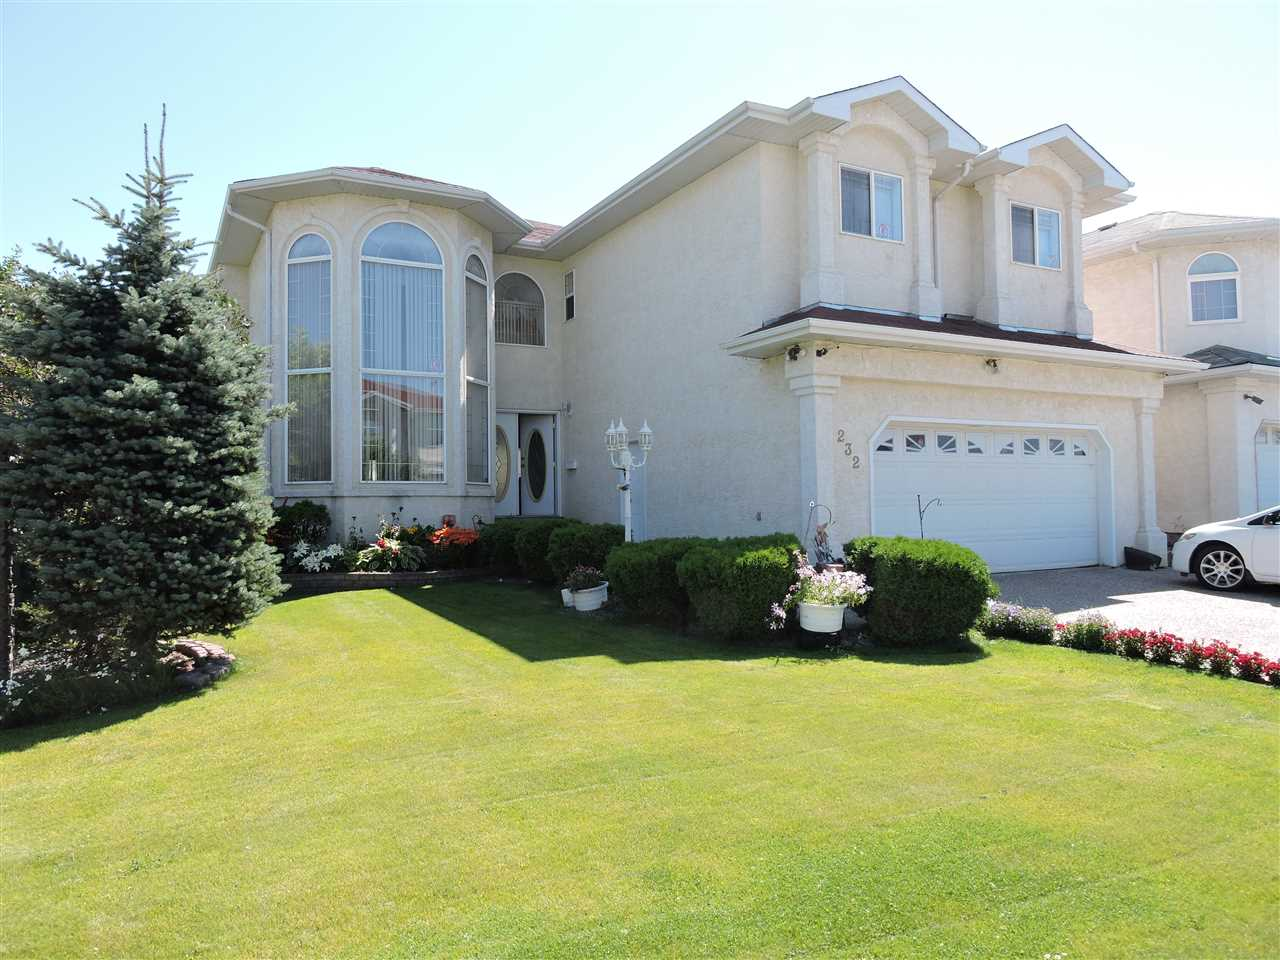 Main Photo: 232 Kulawy Drive NW in Edmonton: Zone 29 House for sale : MLS® # E4075654